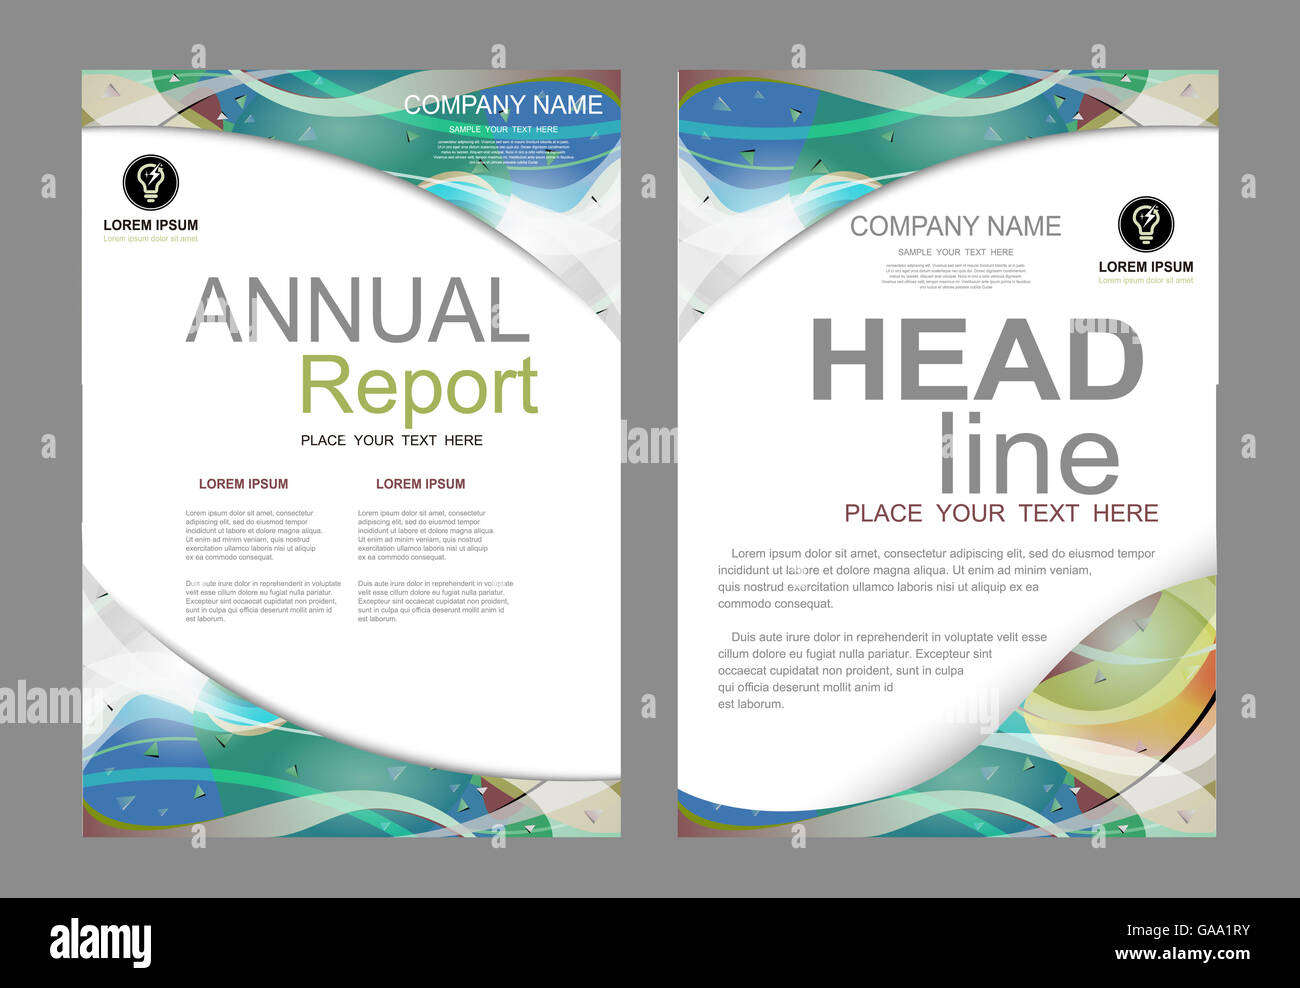 cover, design, annual, layout, flyer, book, ad, page, vector, poster, leaflet, booklet, blank, banner, business, - Stock Image